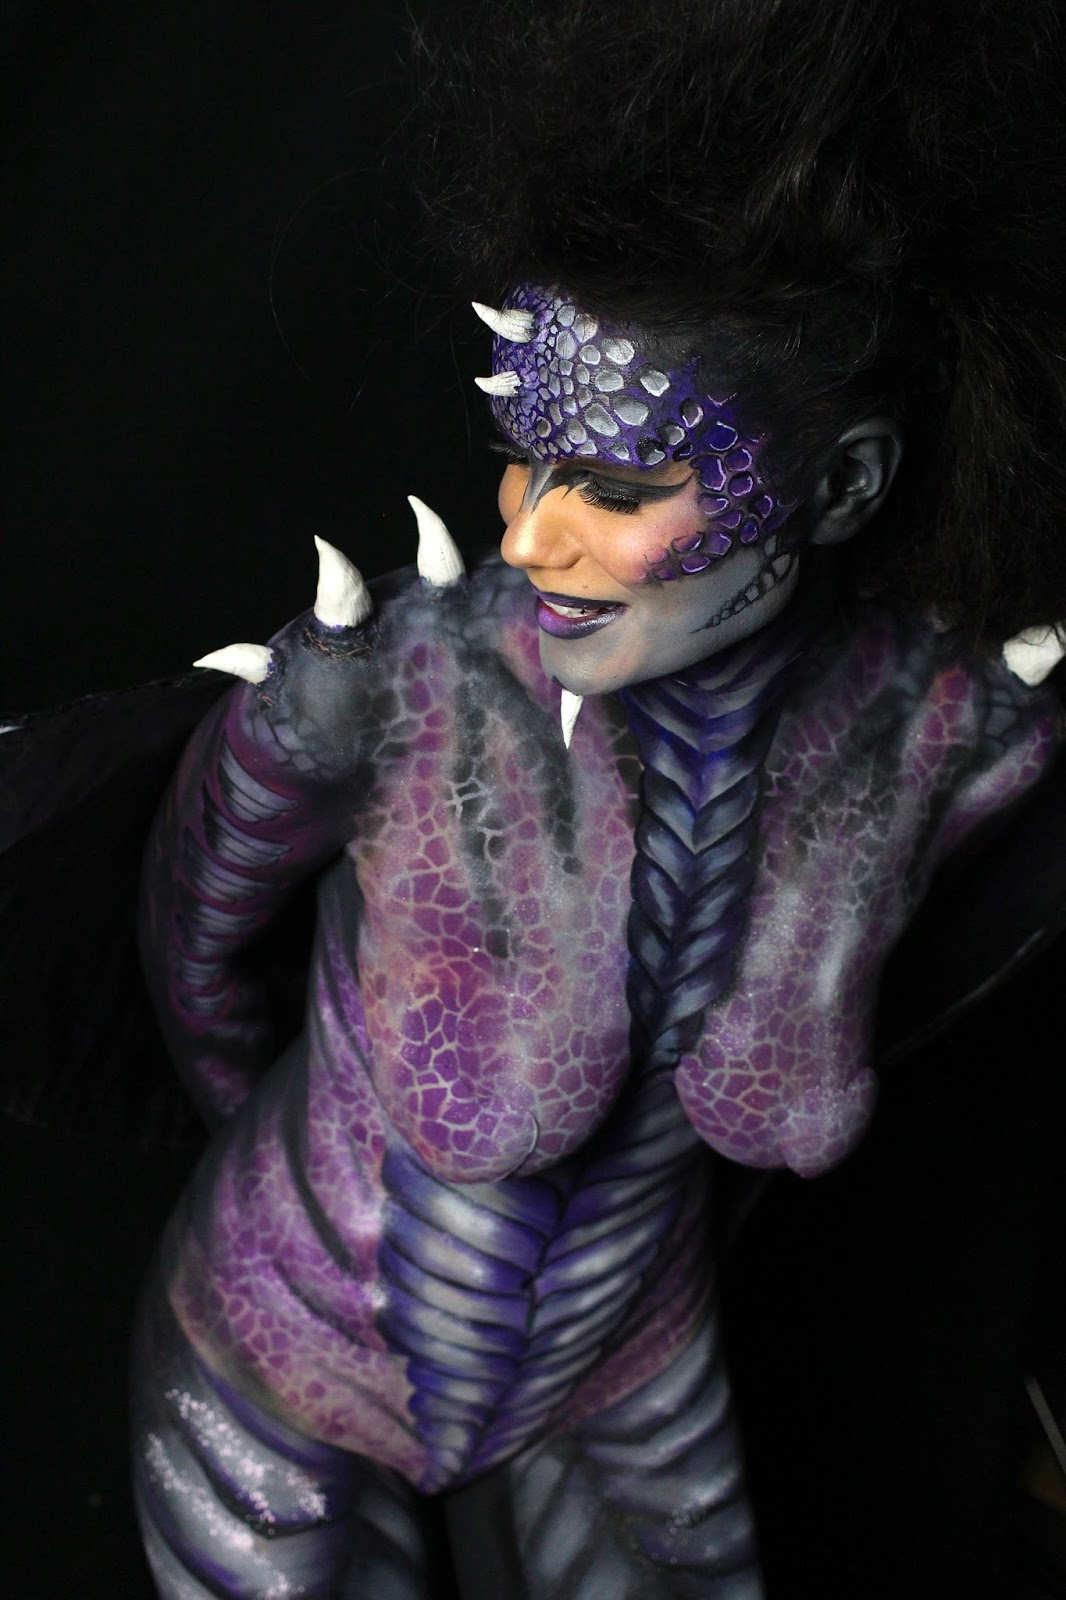 Make-up artist Zoe Newlove teams up with body painter Anna Lingis to bodypaint a Mythical Dragon.